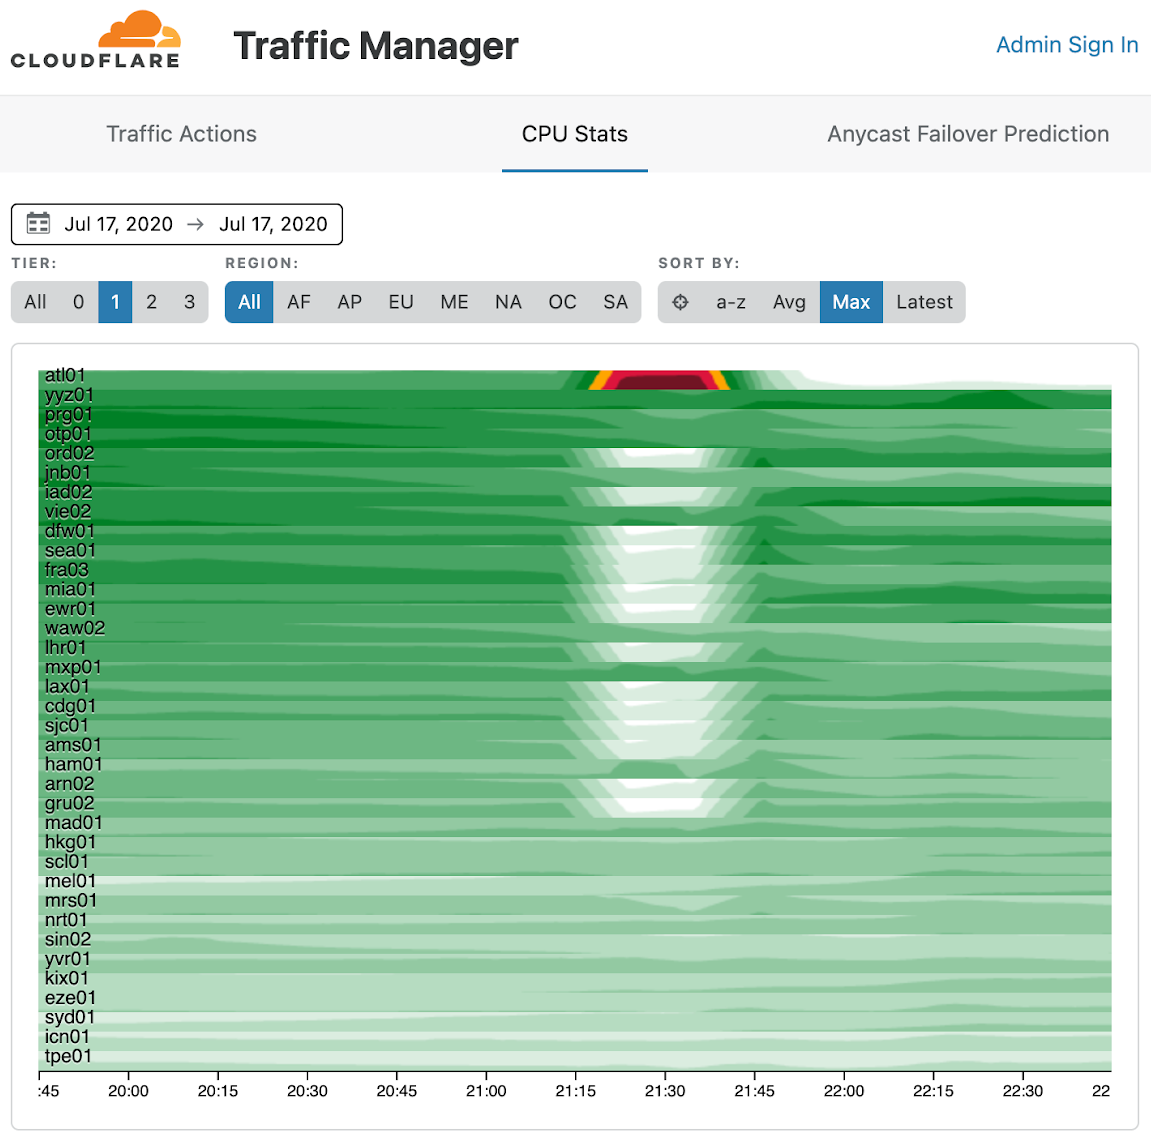 Cloudflare outage on July 17, 2020